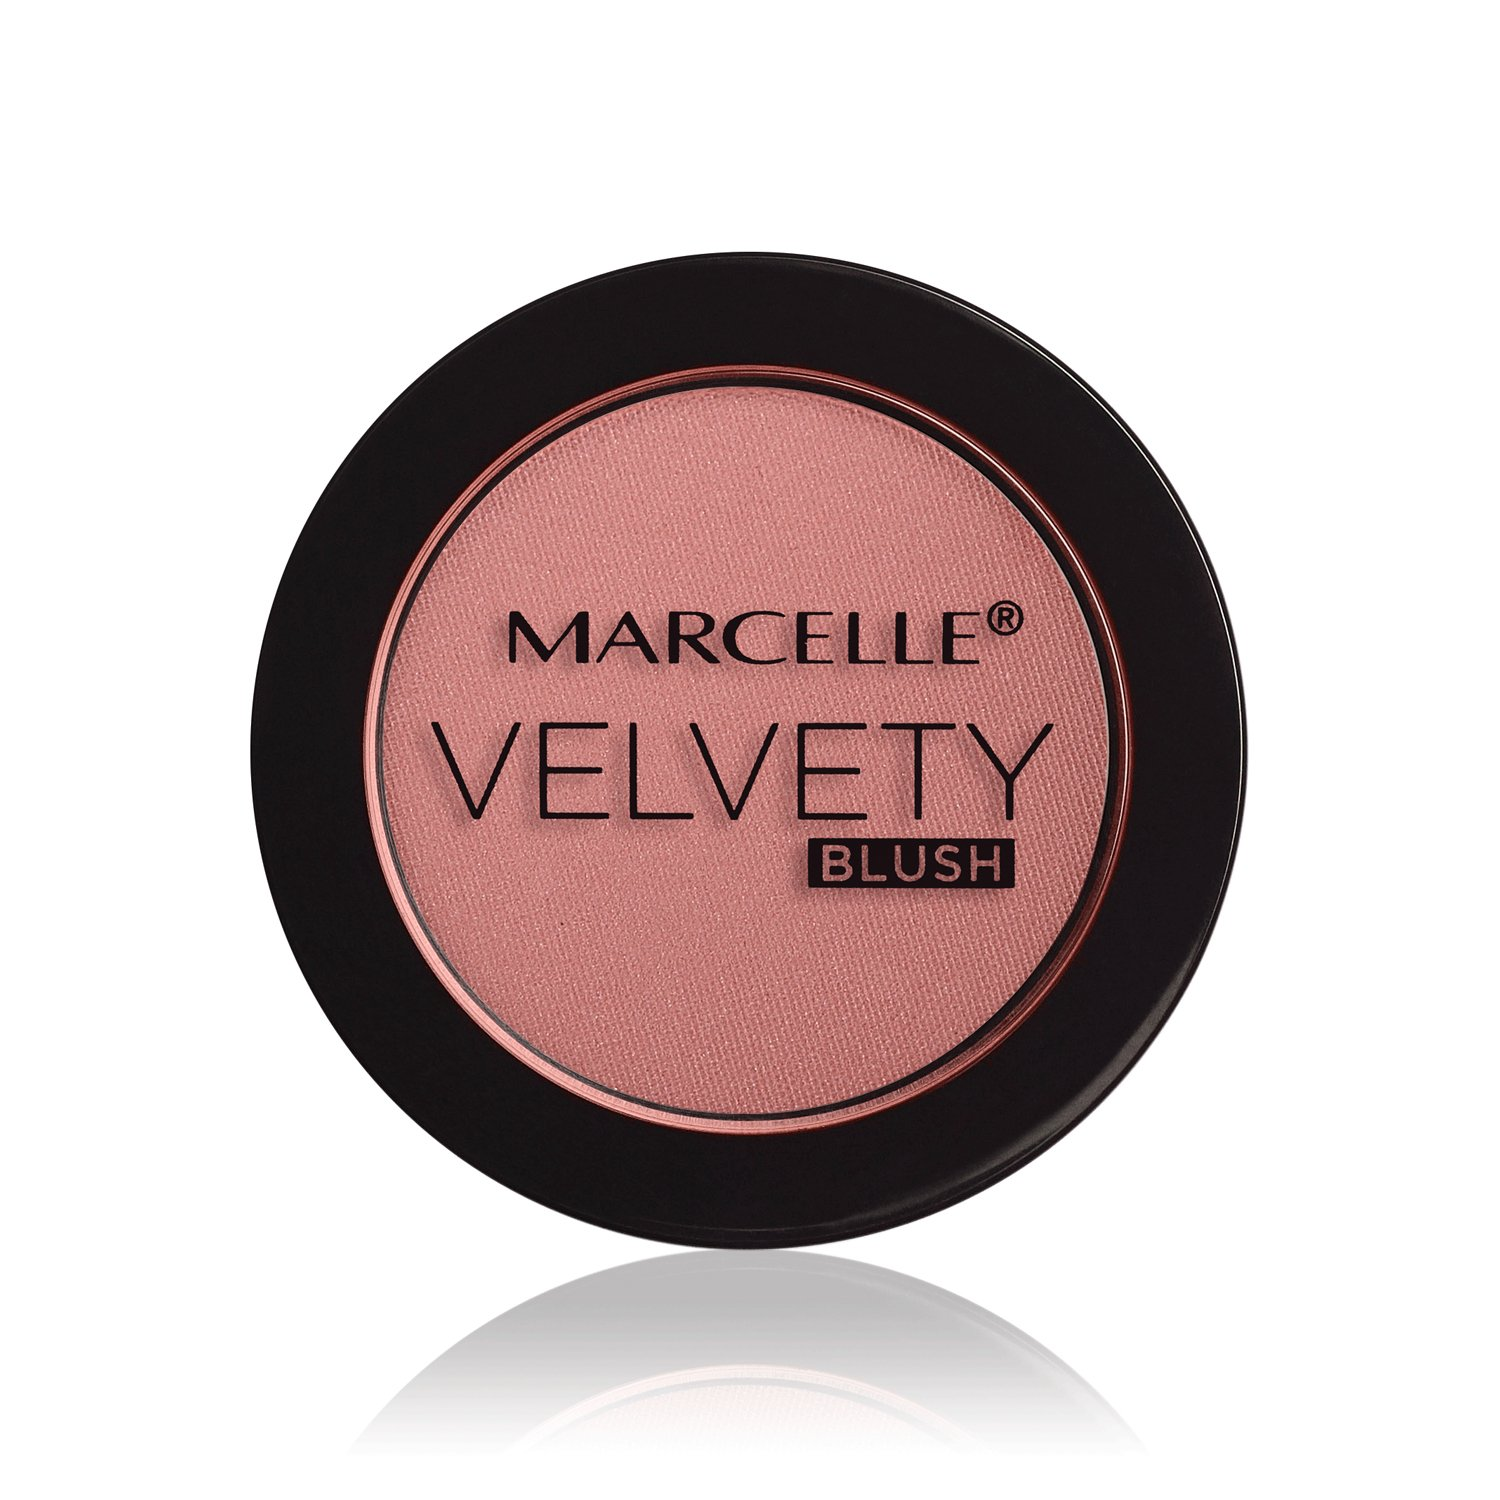 Marcelle Velvety Blush, Soft Coral, Hypoallergenic and Fragrance-Free, 3 g Groupe Marcelle Inc.